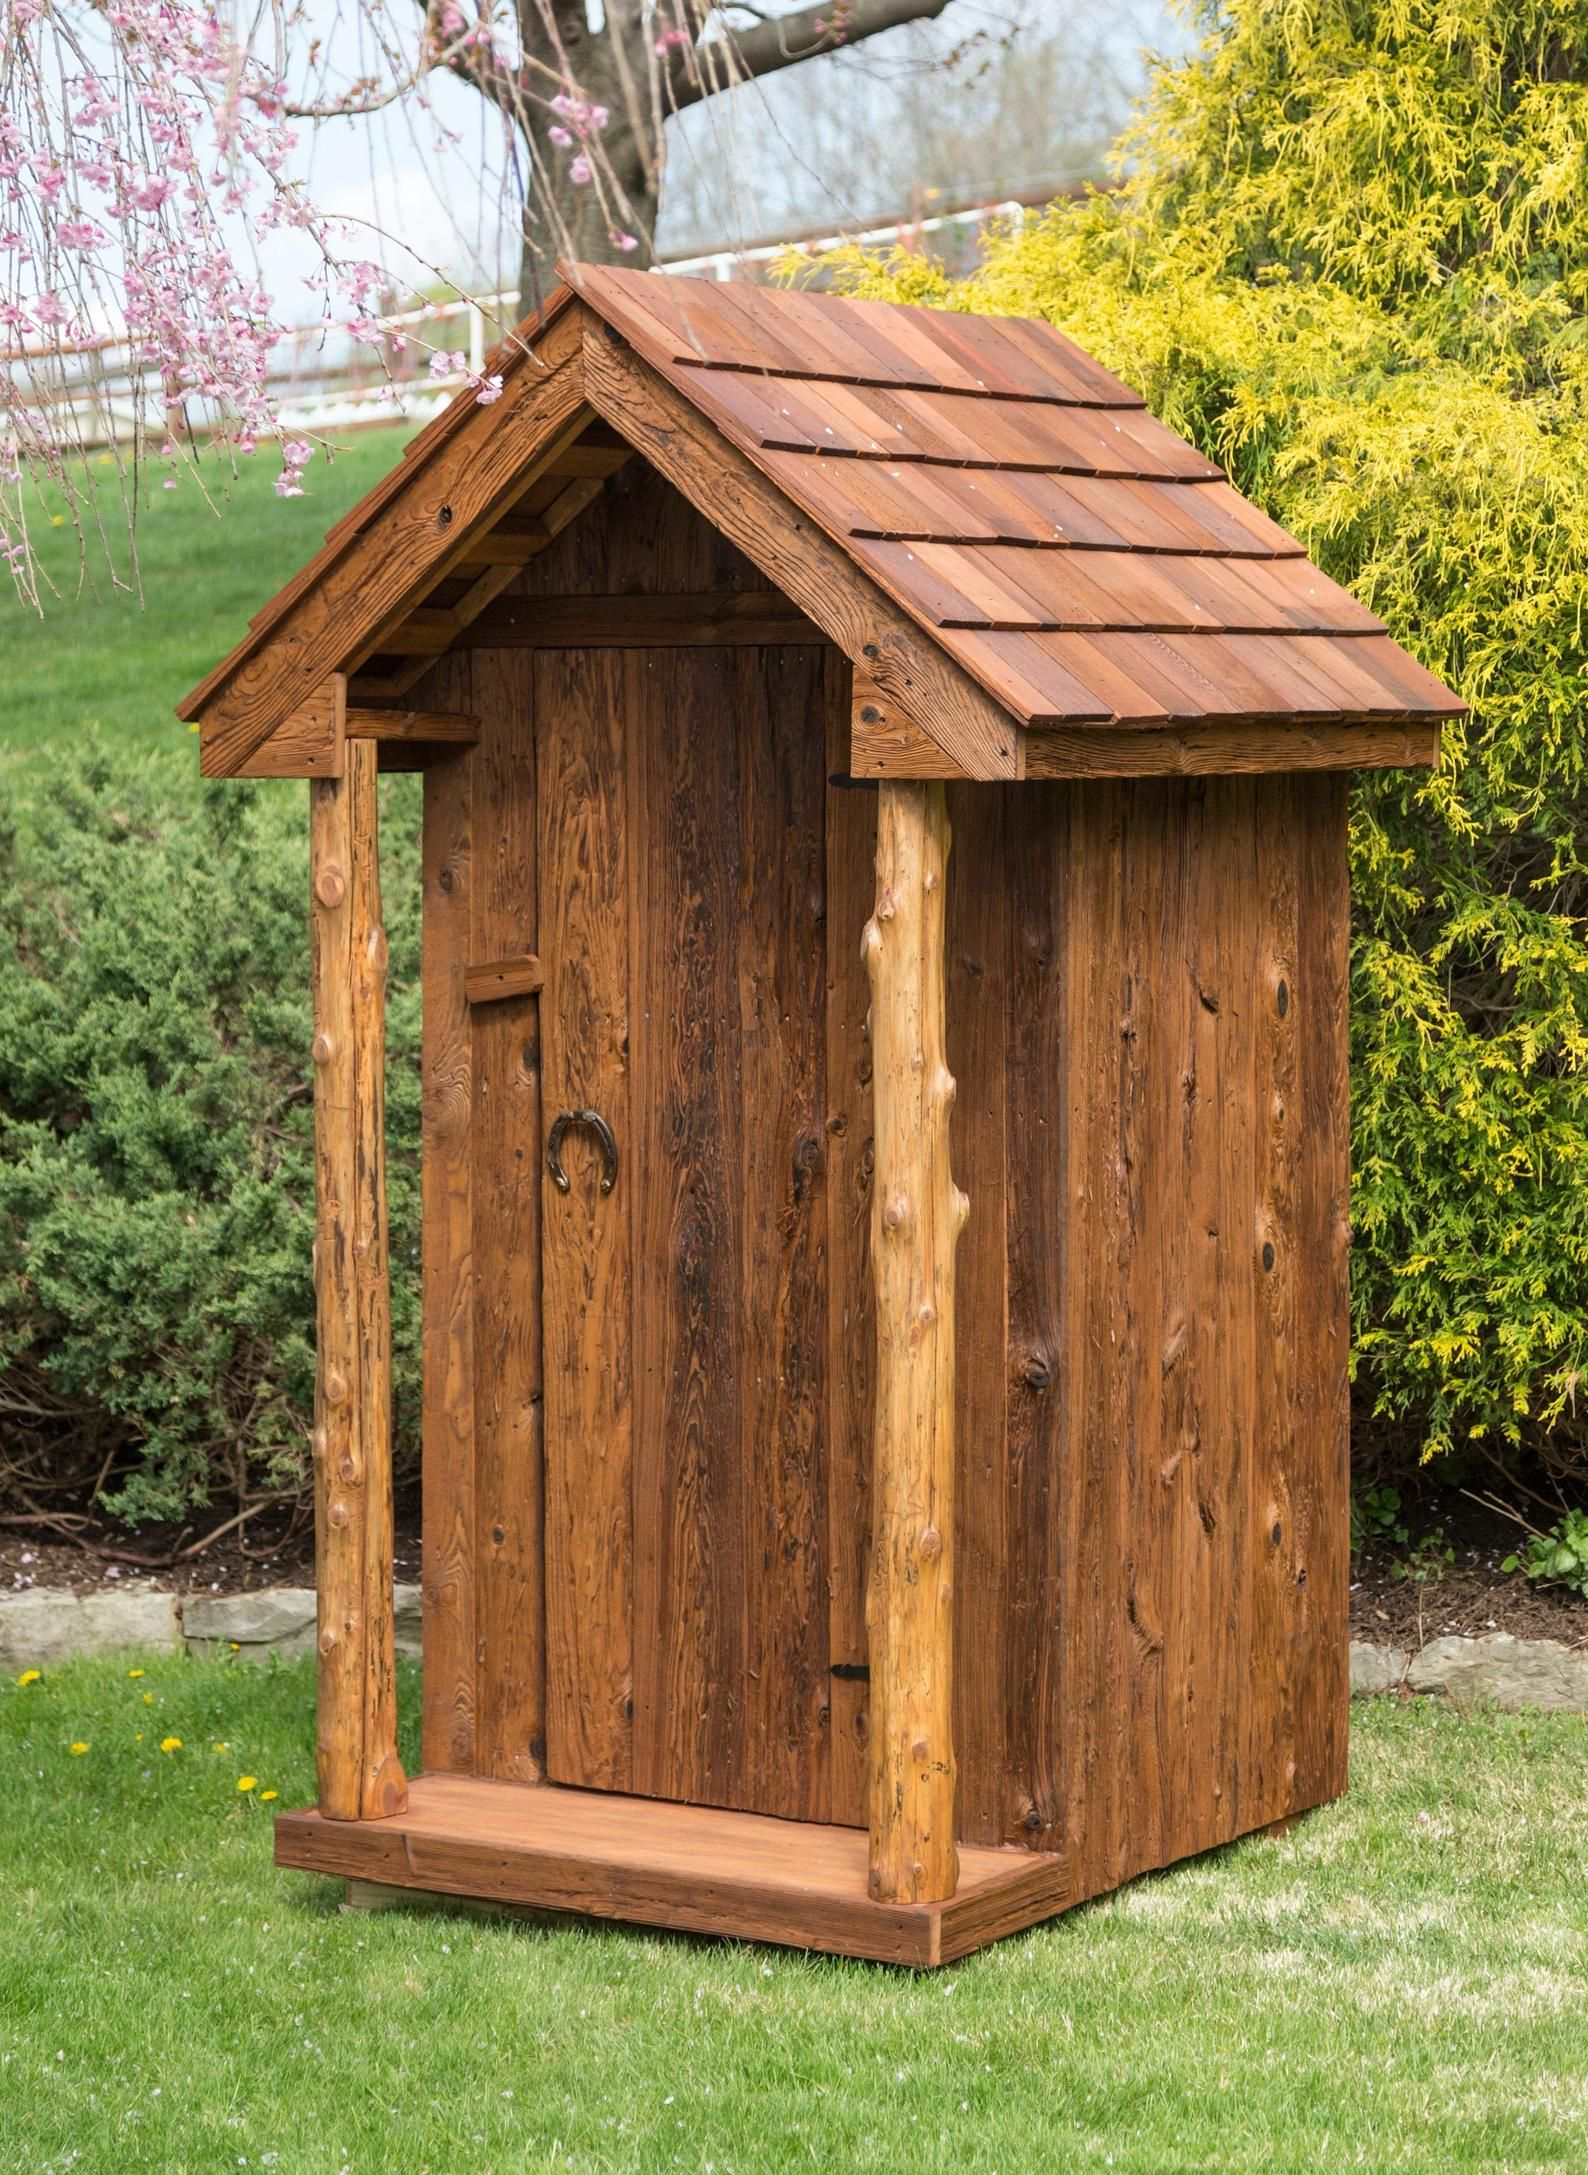 Shed amish handmade amish outhouse garden tool shed the